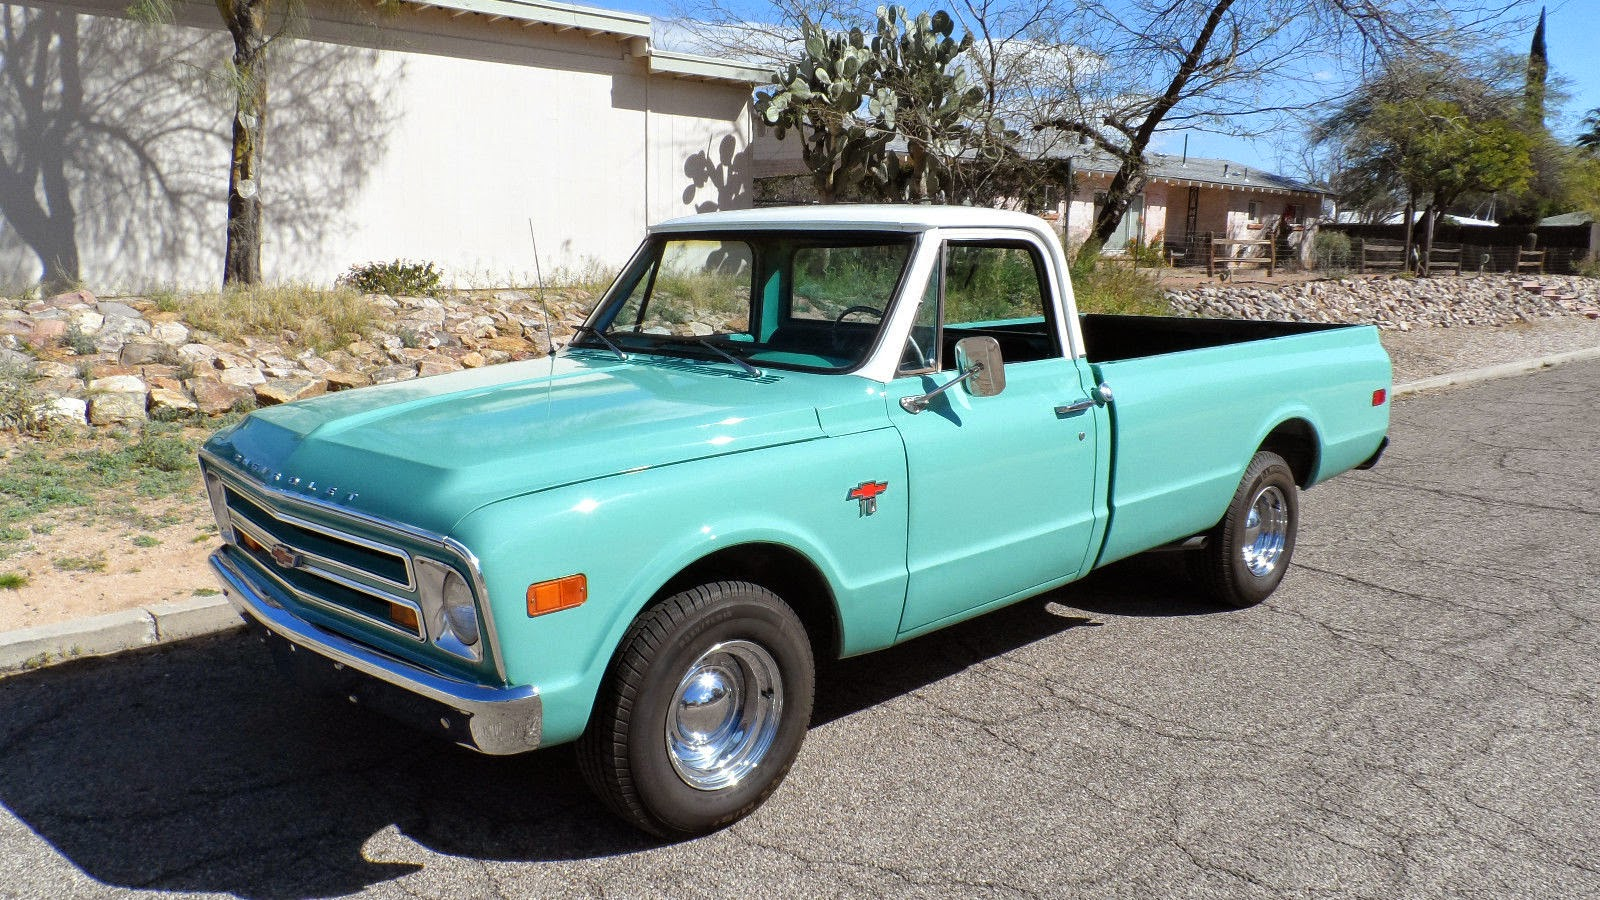 1959 FORD F 100 4X4 PICKUP 43548 also Volkswagen Type 2 Pickups And Panel Vans as well Is The Jeep Pickup Truck Making A  eback in addition Watch as well . on vintage dodge power wagon